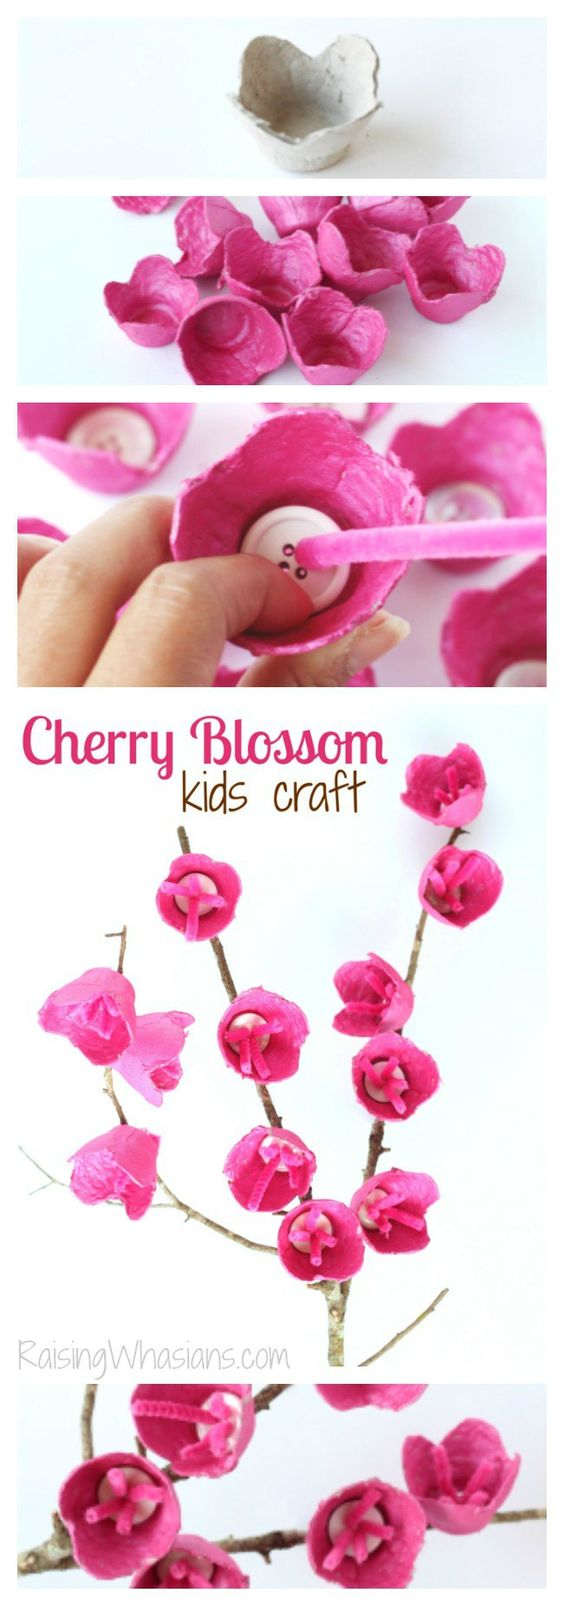 Upcycle Old Egg Cartons into Cherry Blossom Craft for Kids.